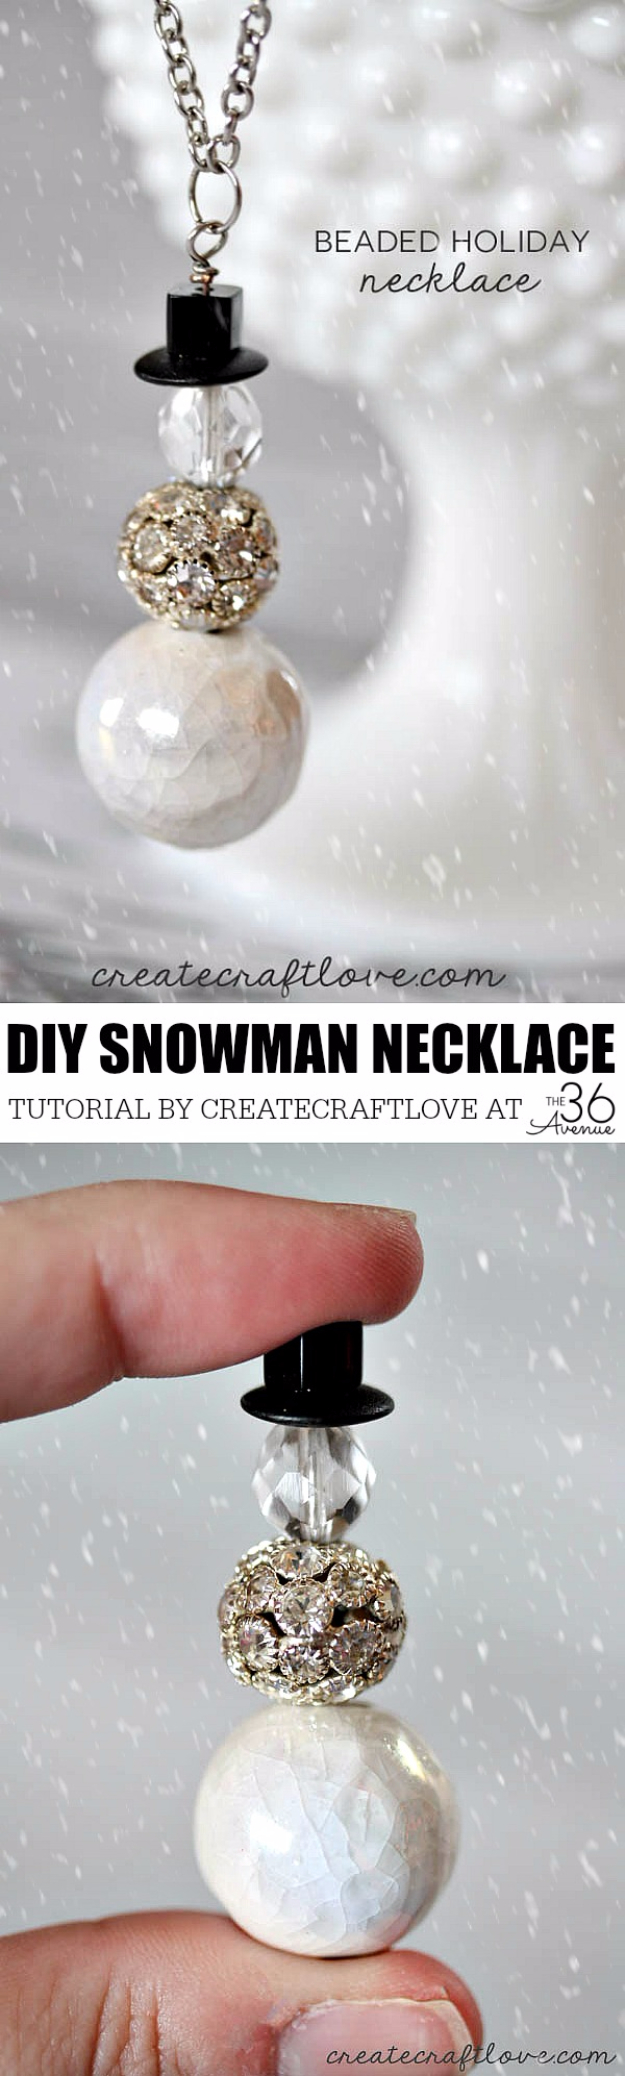 Best DIY Ideas for Wintertime - Beaded Holiday Necklace - Winter Crafts with Snowflakes, Icicle Art and Projects, Wreaths, Woodland and Winter Wonderland Decor, Mason Jars and Dollar Store Ideas - Easy DIY Ideas to Decorate Home and Room for Winter - Creative Home Decor and Room Decorations for Adults, Teens and Kids #diy #winter #crafts